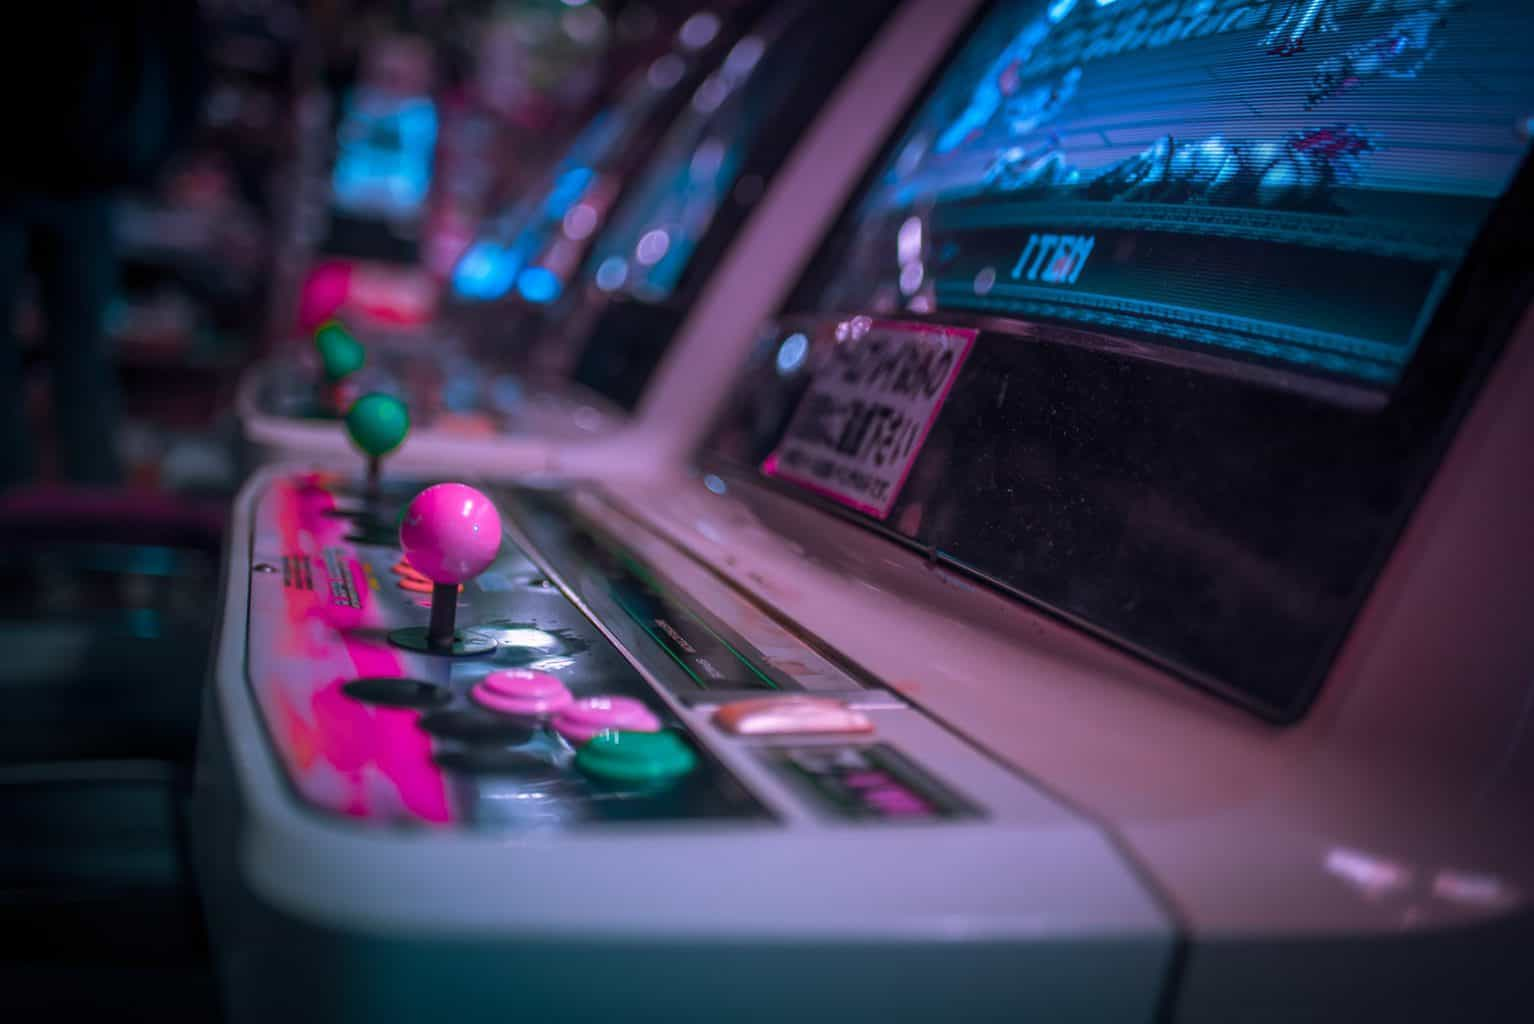 Some of the amazing Japanese and American, vintage arcade games that you'll find in Amsterdam's TonTon Club.